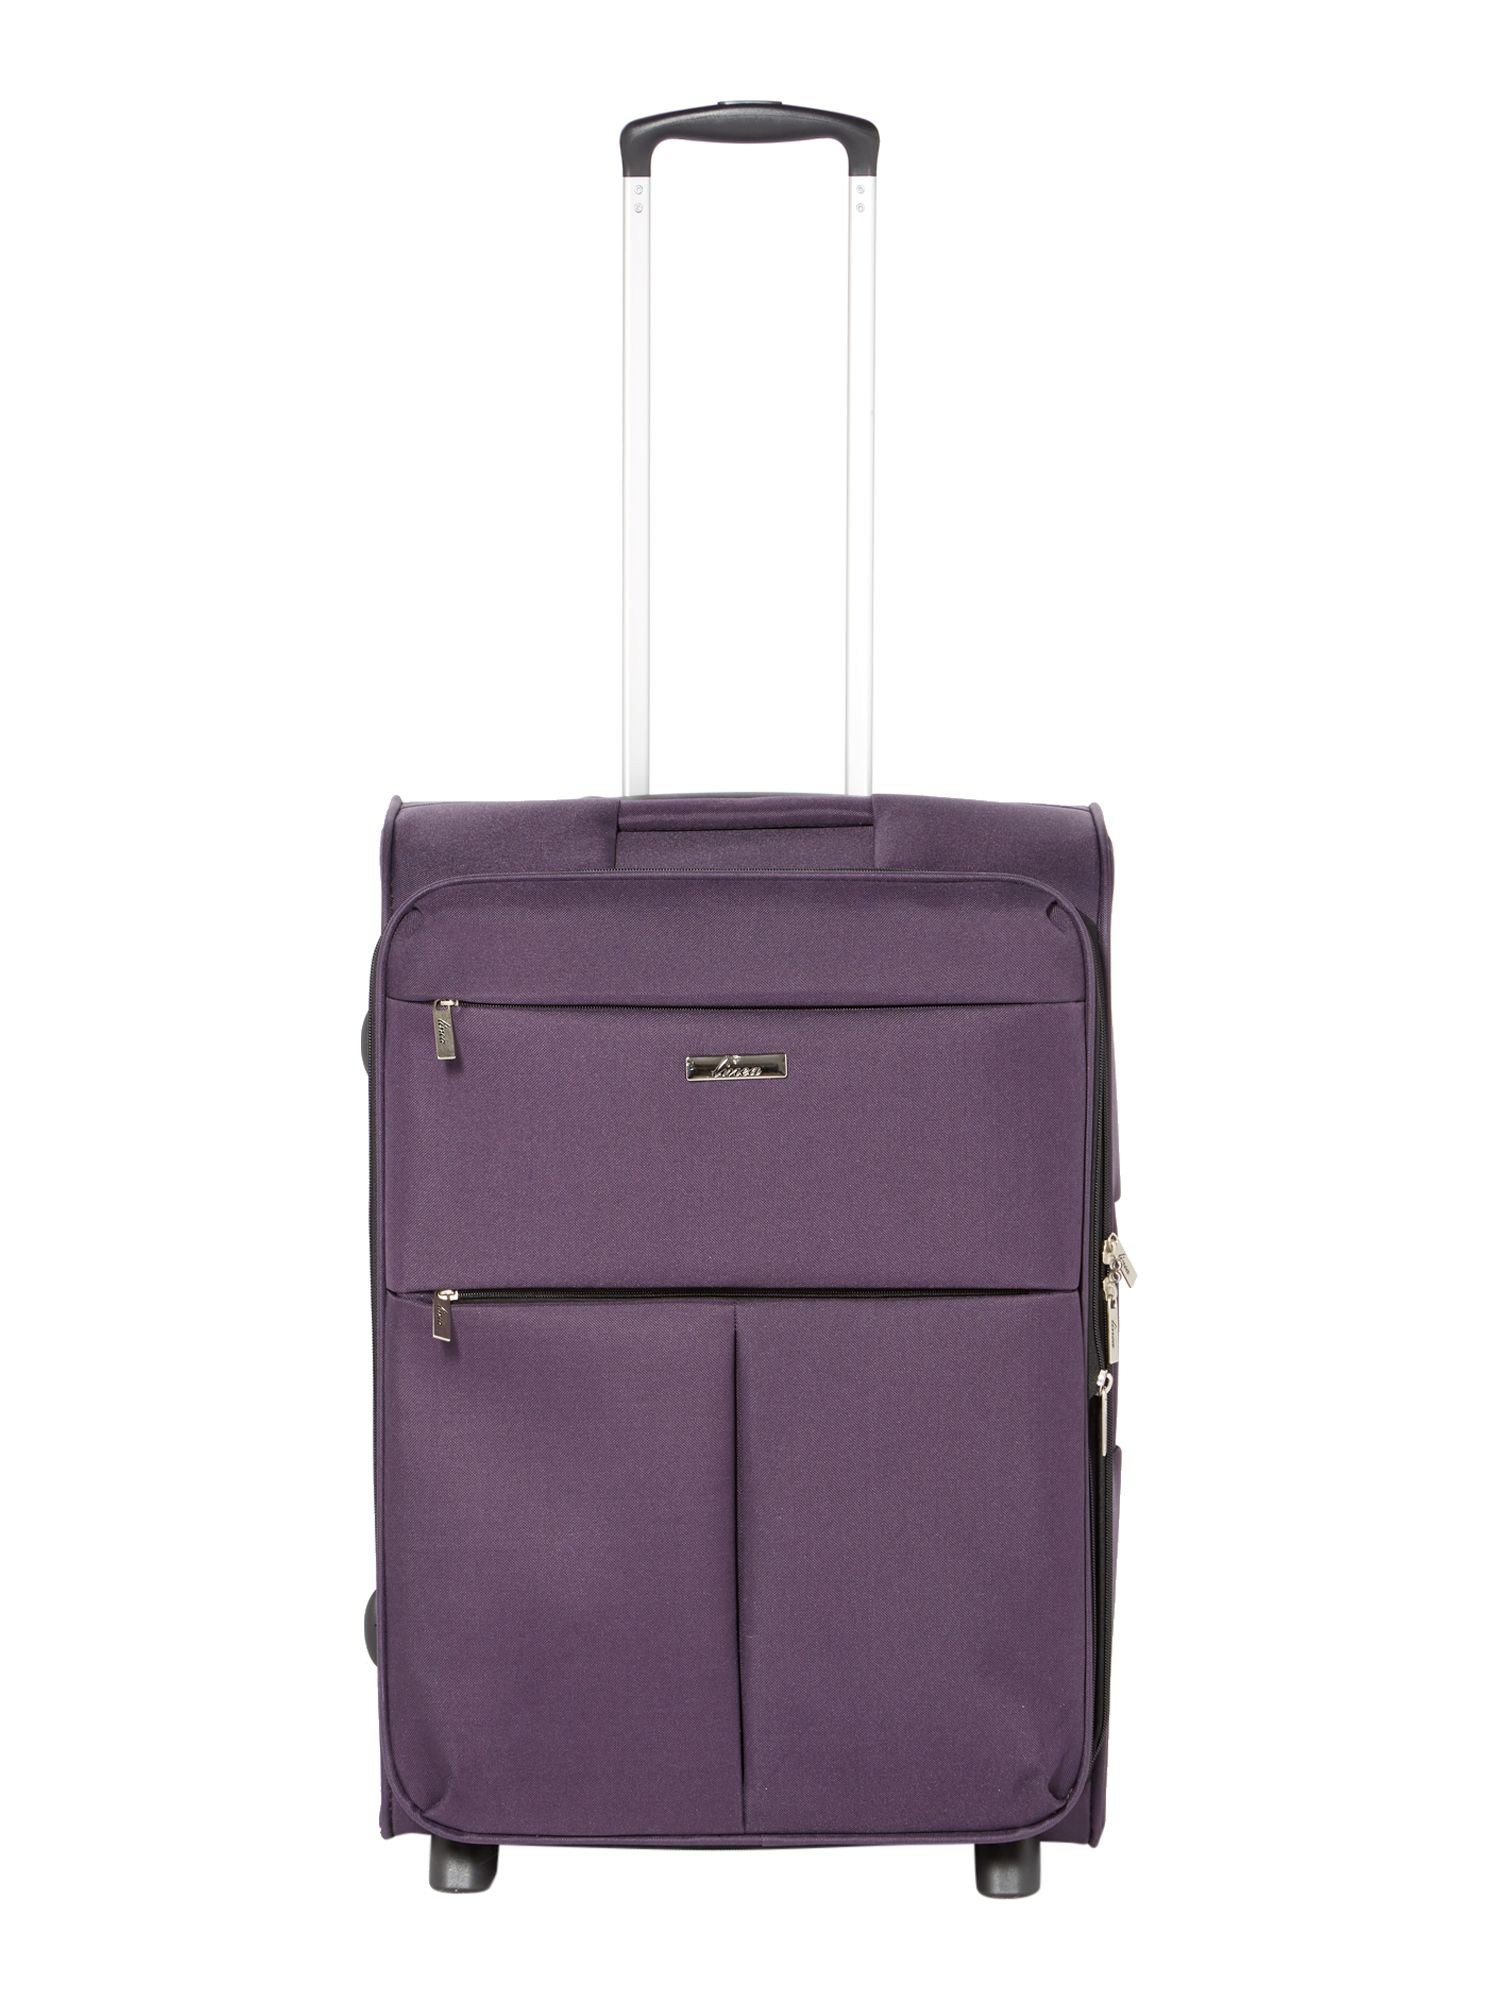 Linea Cambridge purple 2 wheel soft medium suitcase Purple